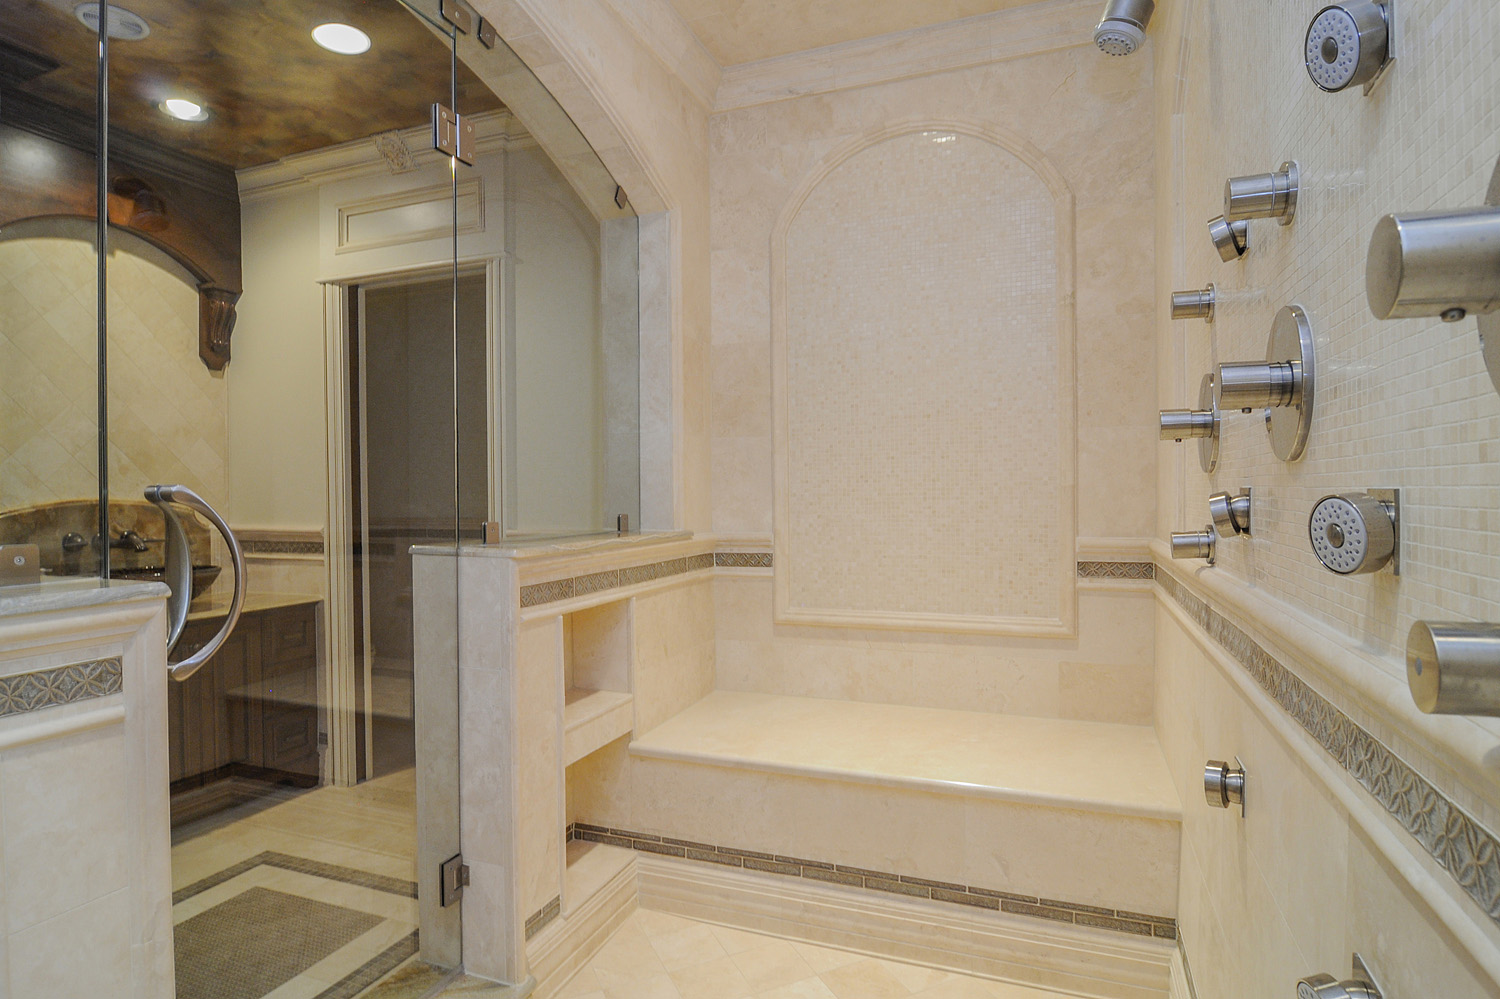 ideas tile cabinet granite quartz bathroom remodeling naperville aurora sebring services naperville bathroom remodeling